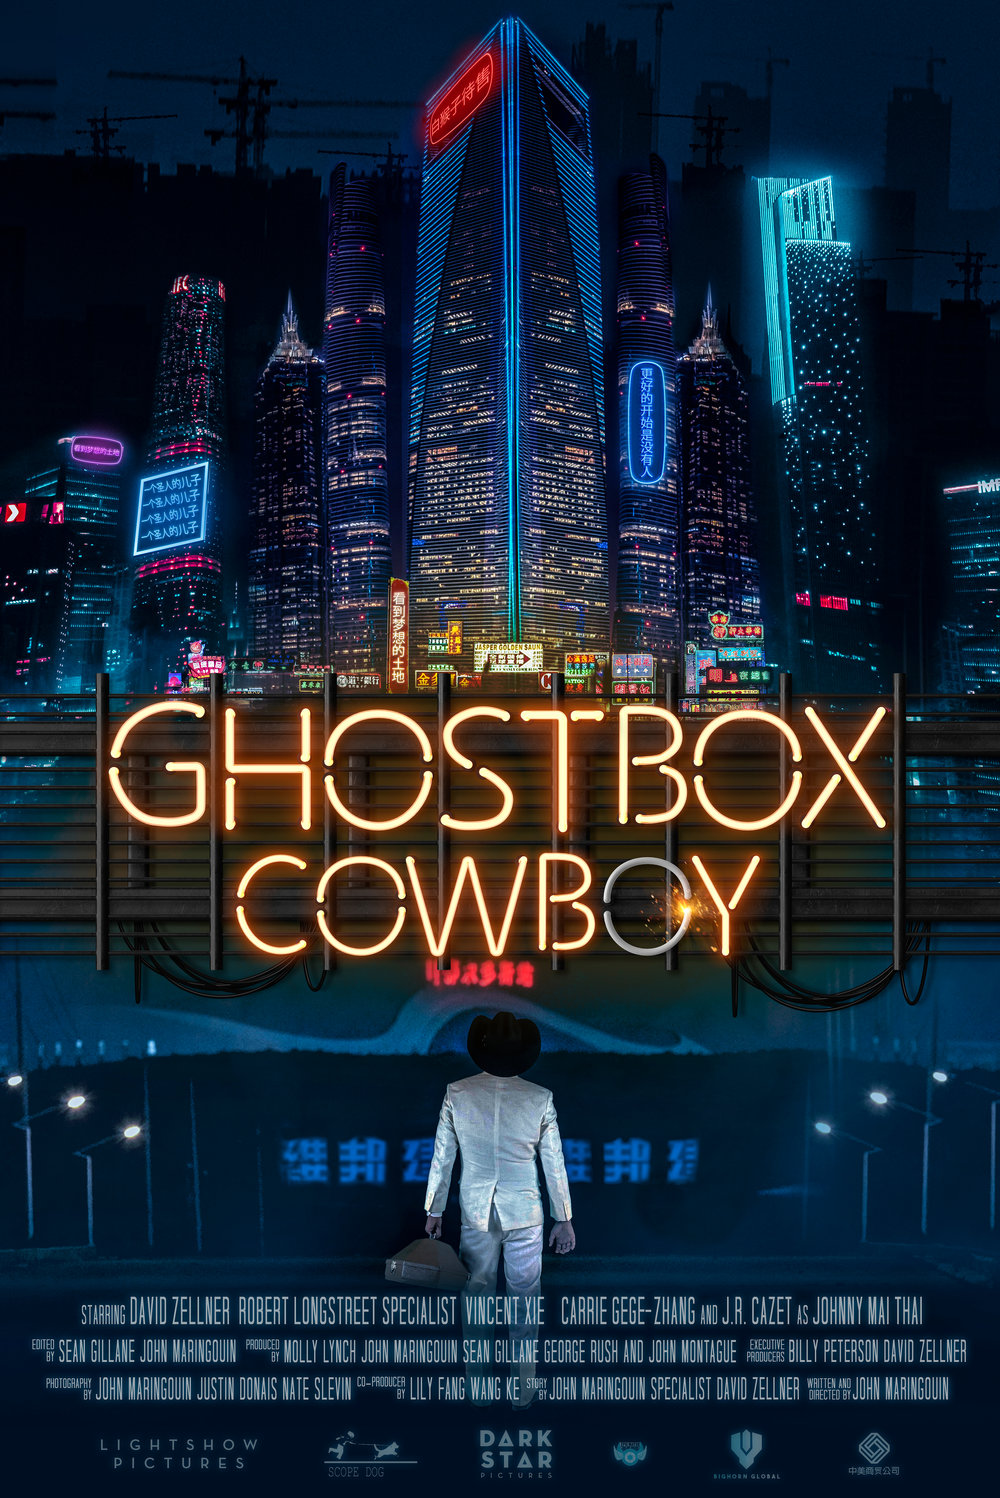 Ghostbox Cowboy AVAILABLE ON AMAZON PRIME